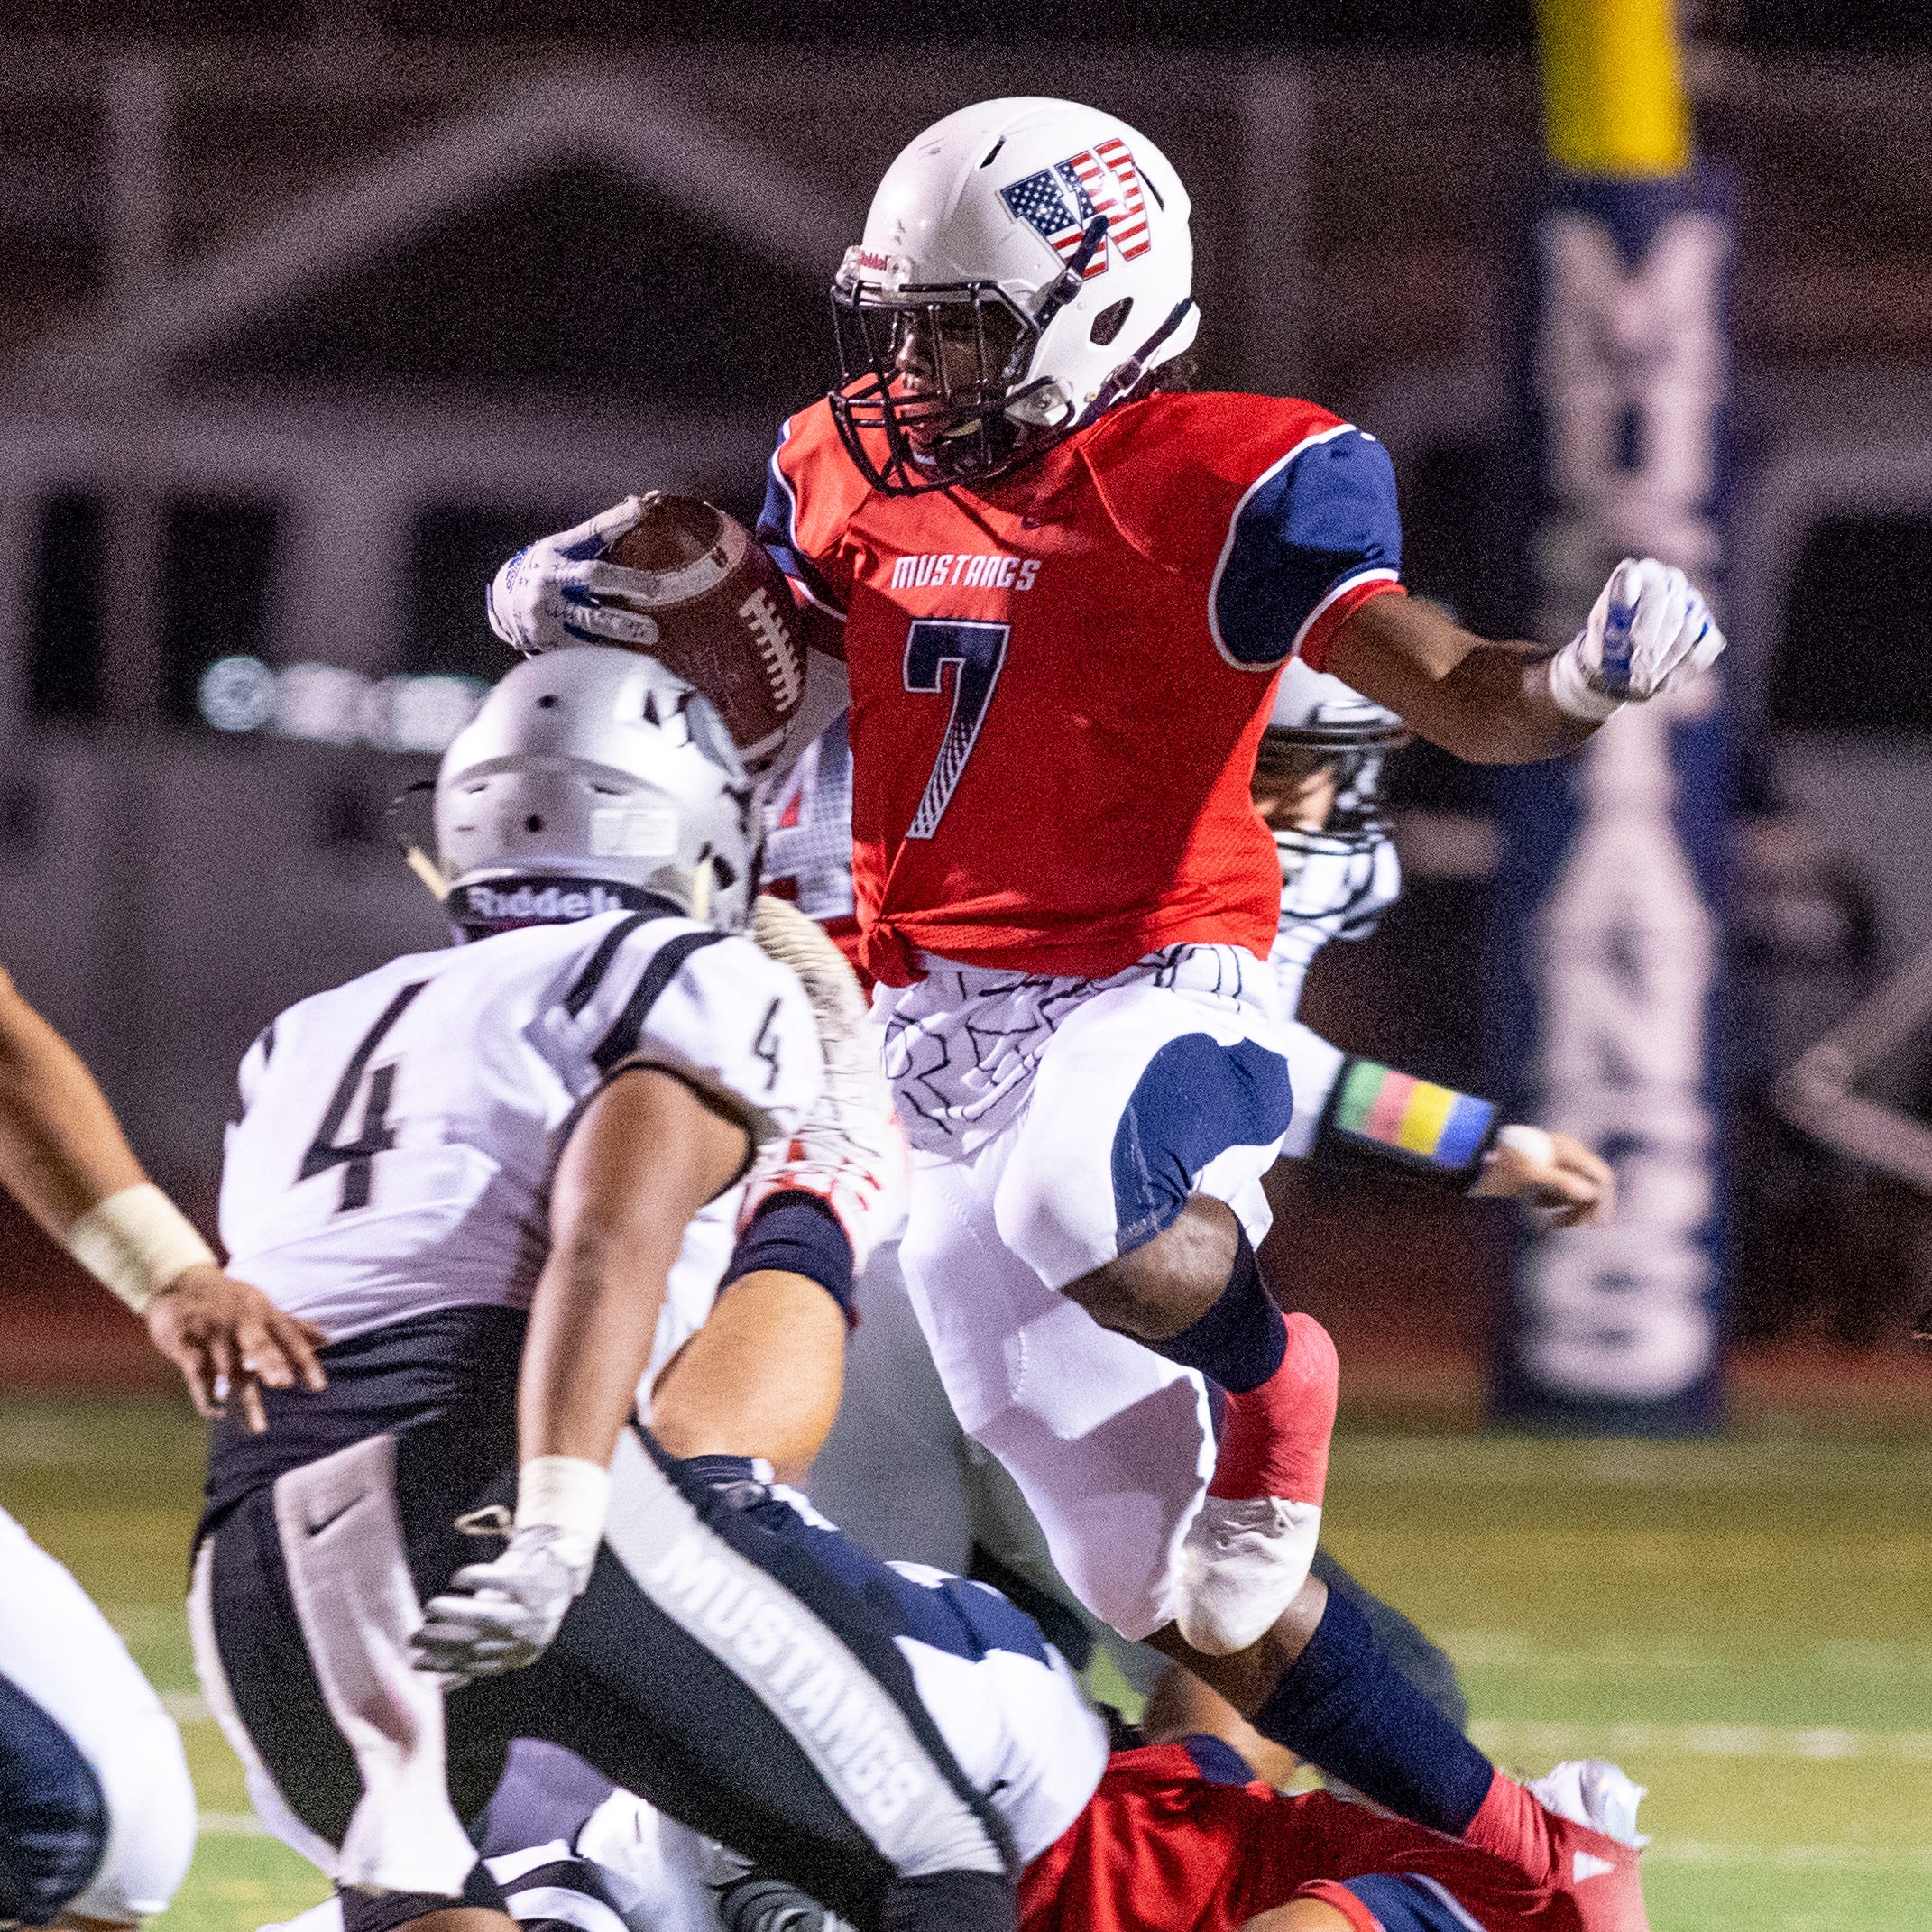 Tulare Western hosted Stockdale on Thursday in a playoff game. Find out who won by one point.